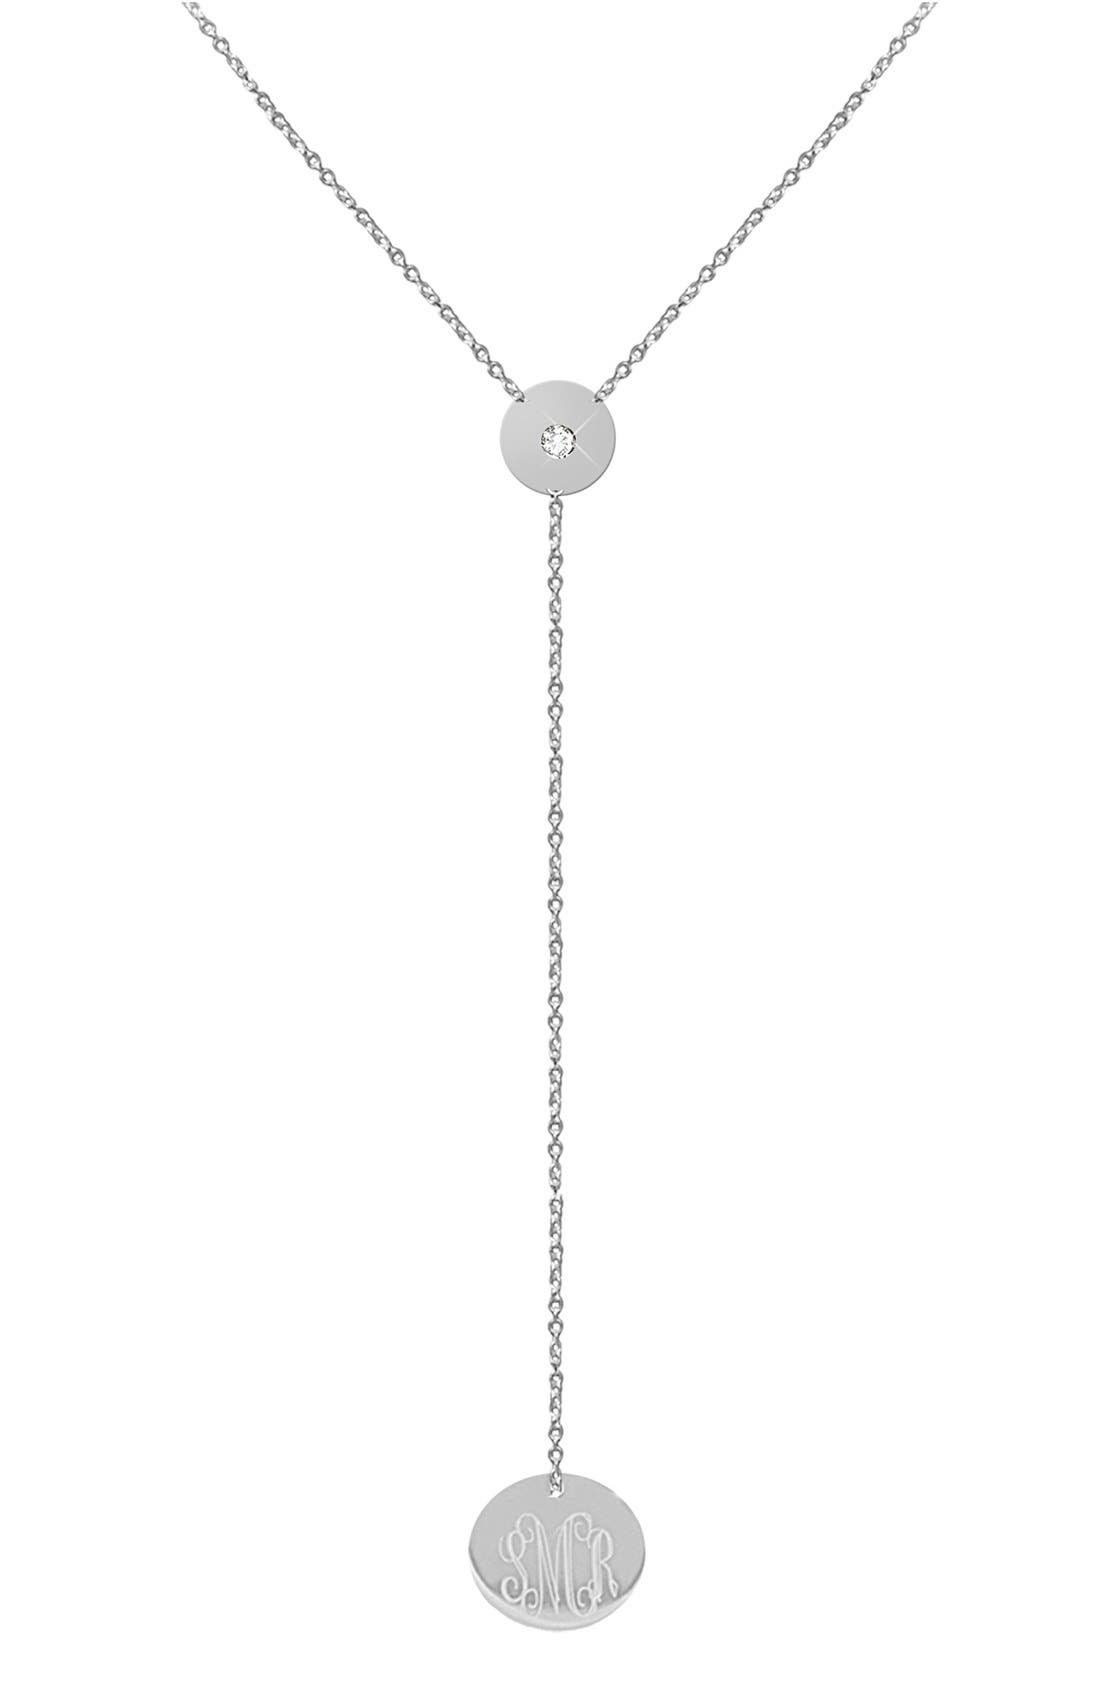 JANE BASCH DESIGNS Diamond & Personalized Monogram Y-Necklace